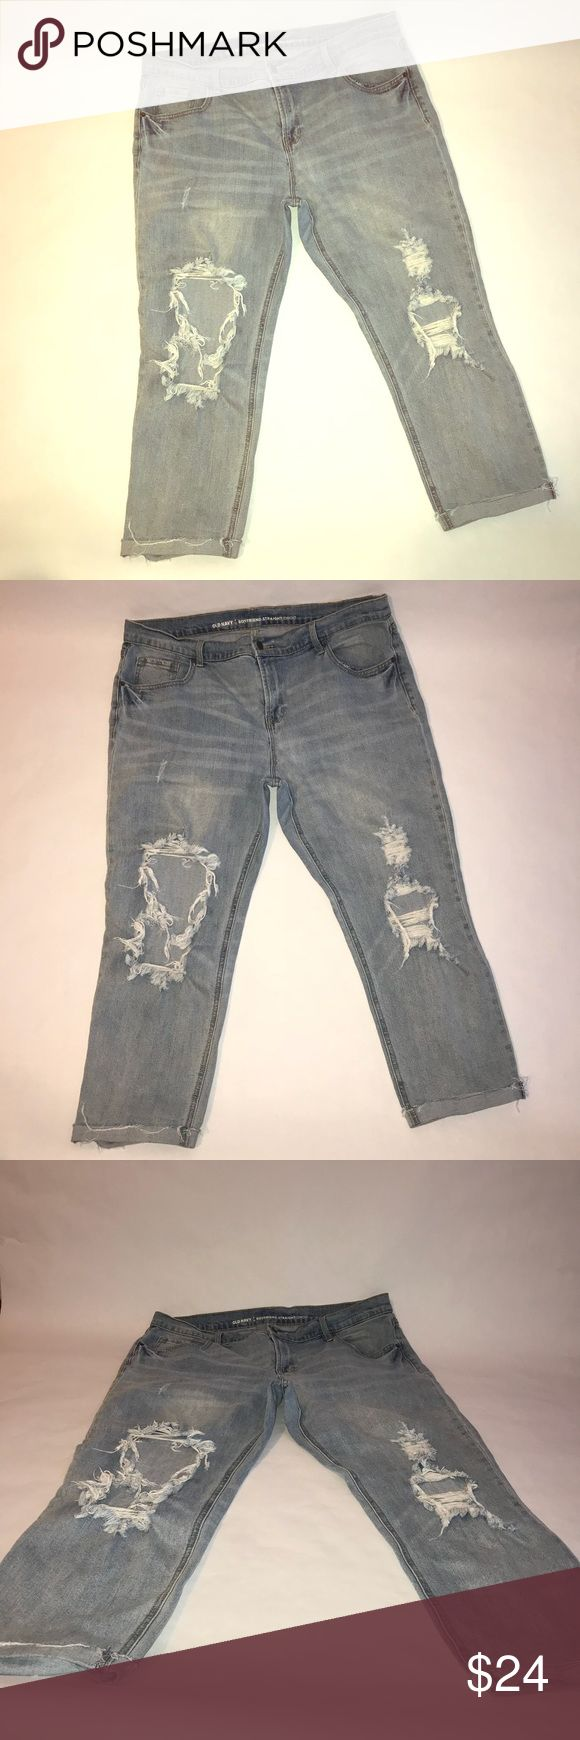 Women's old navy denim jeans size 16 Like new women's size 16 regular Old Navy jeans. These jeans have that rugged torn look on the front print legs. That's exactly the way that old navy manufactured them. They are in excellent condition and have plenty of life left. The measurements are shown in the photos. Inseam as well as waist has been measured. The bottoms are stitched up to show the cuff and frayed to be consistent with the worn , rugged , torn fashion look. Old Navy Jeans Straight…